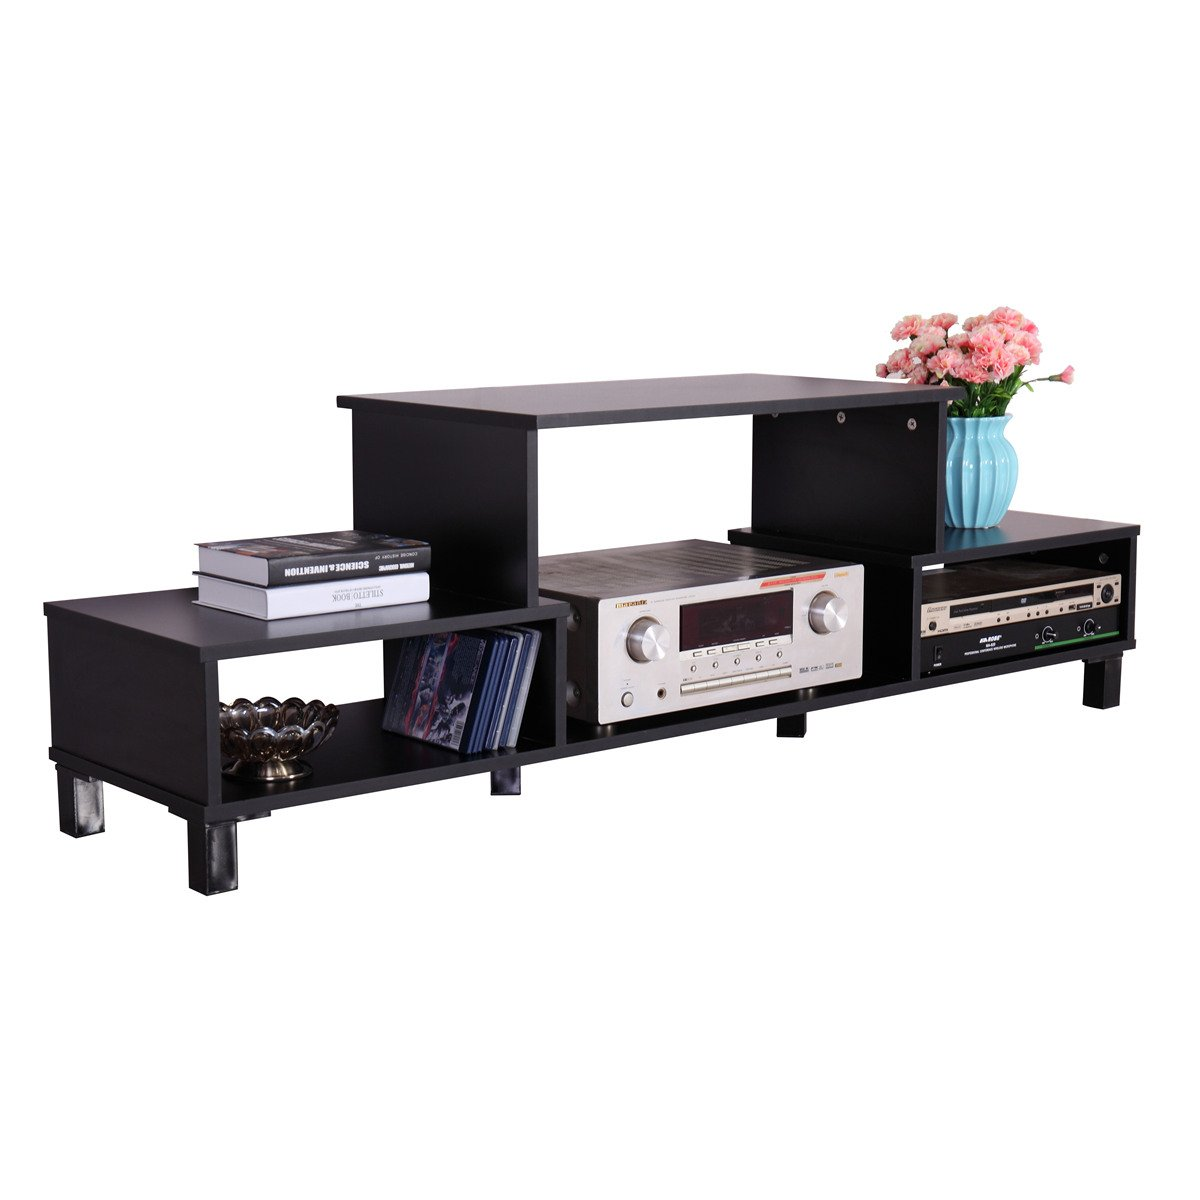 Winmart Modern Entertainment Media Storage Console Wood Cabinet Home Theater Shelf TV Rack by Winmart